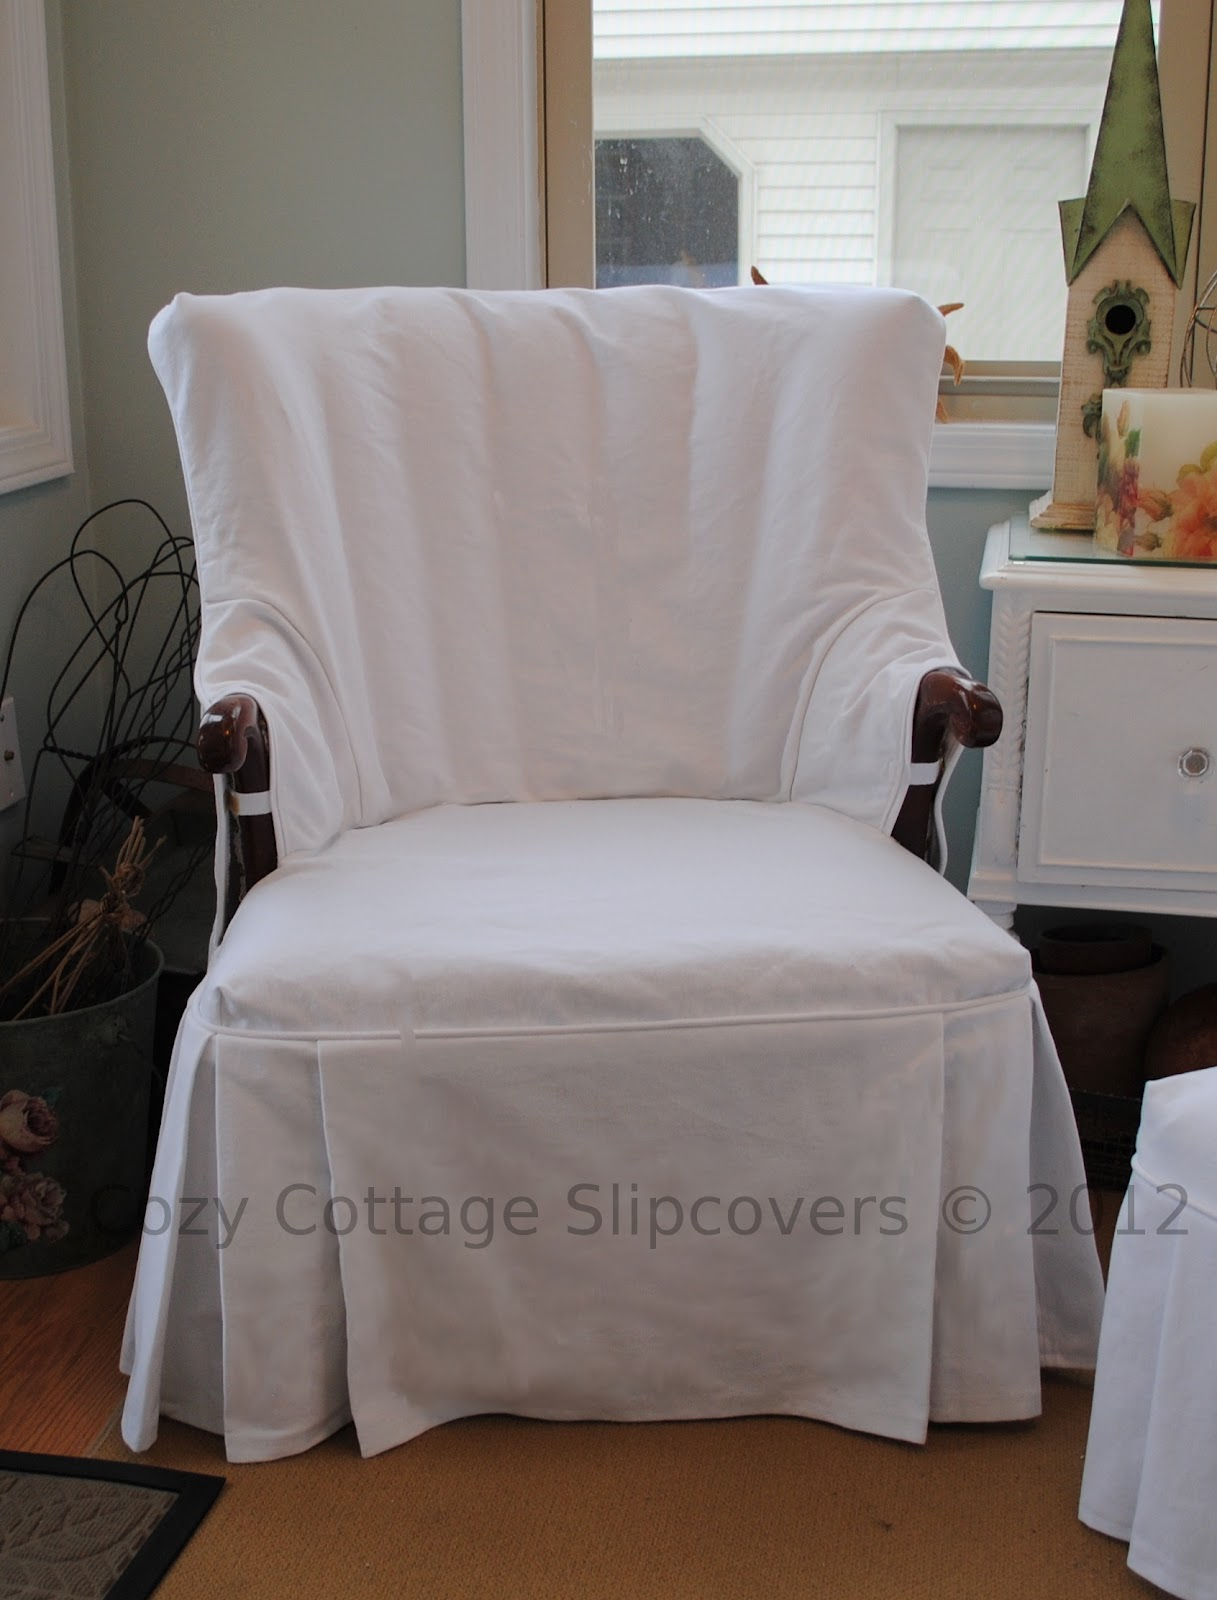 Cozy cottage slipcovers new office chair slipcovers - Sunroom Slipcovers